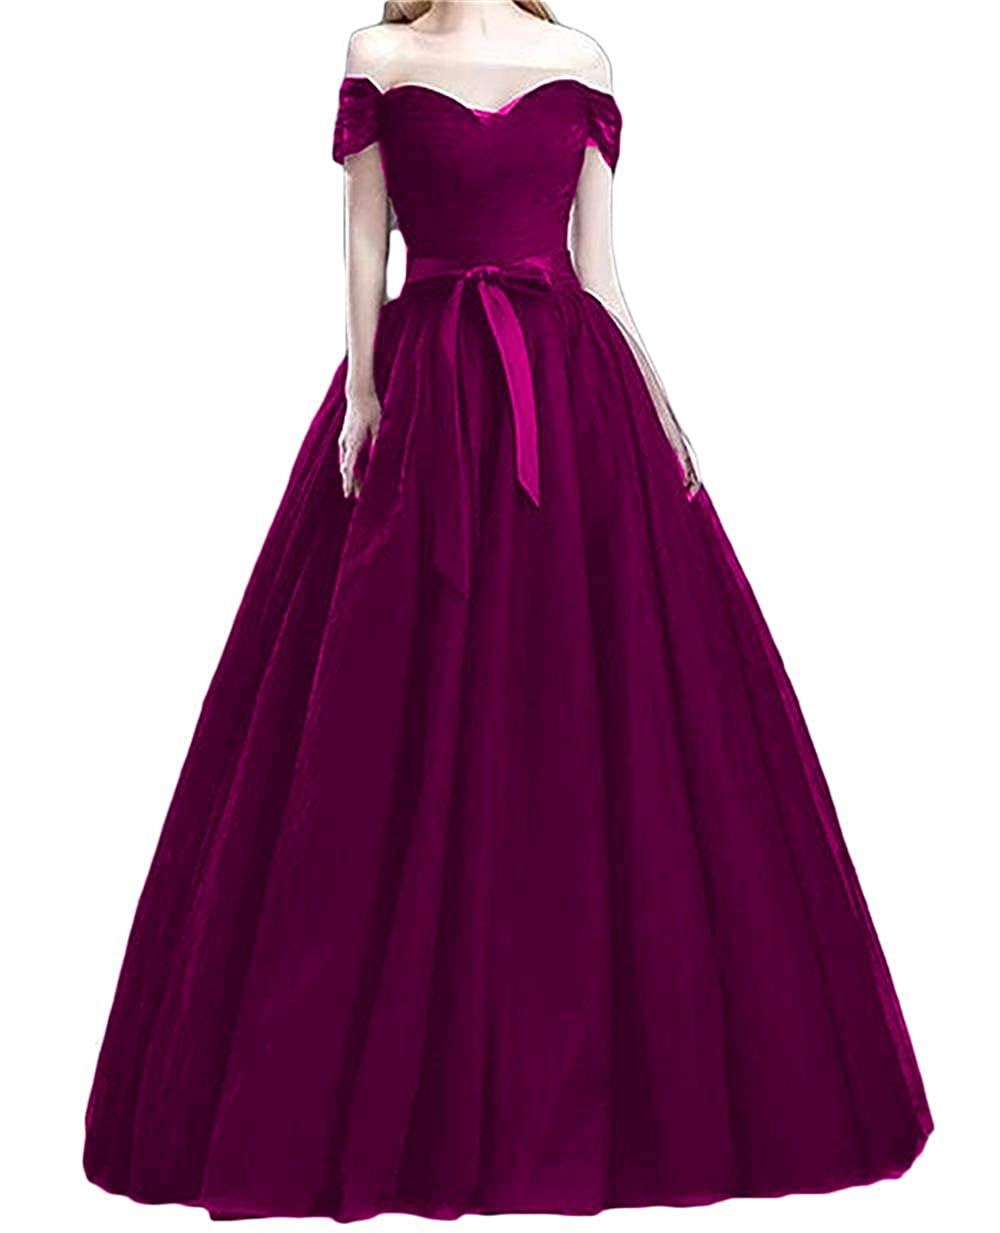 Grape XKYU Women's Off The Shoulder Prom Evening Party Dresses Tulle Long Formal Ball Gowns